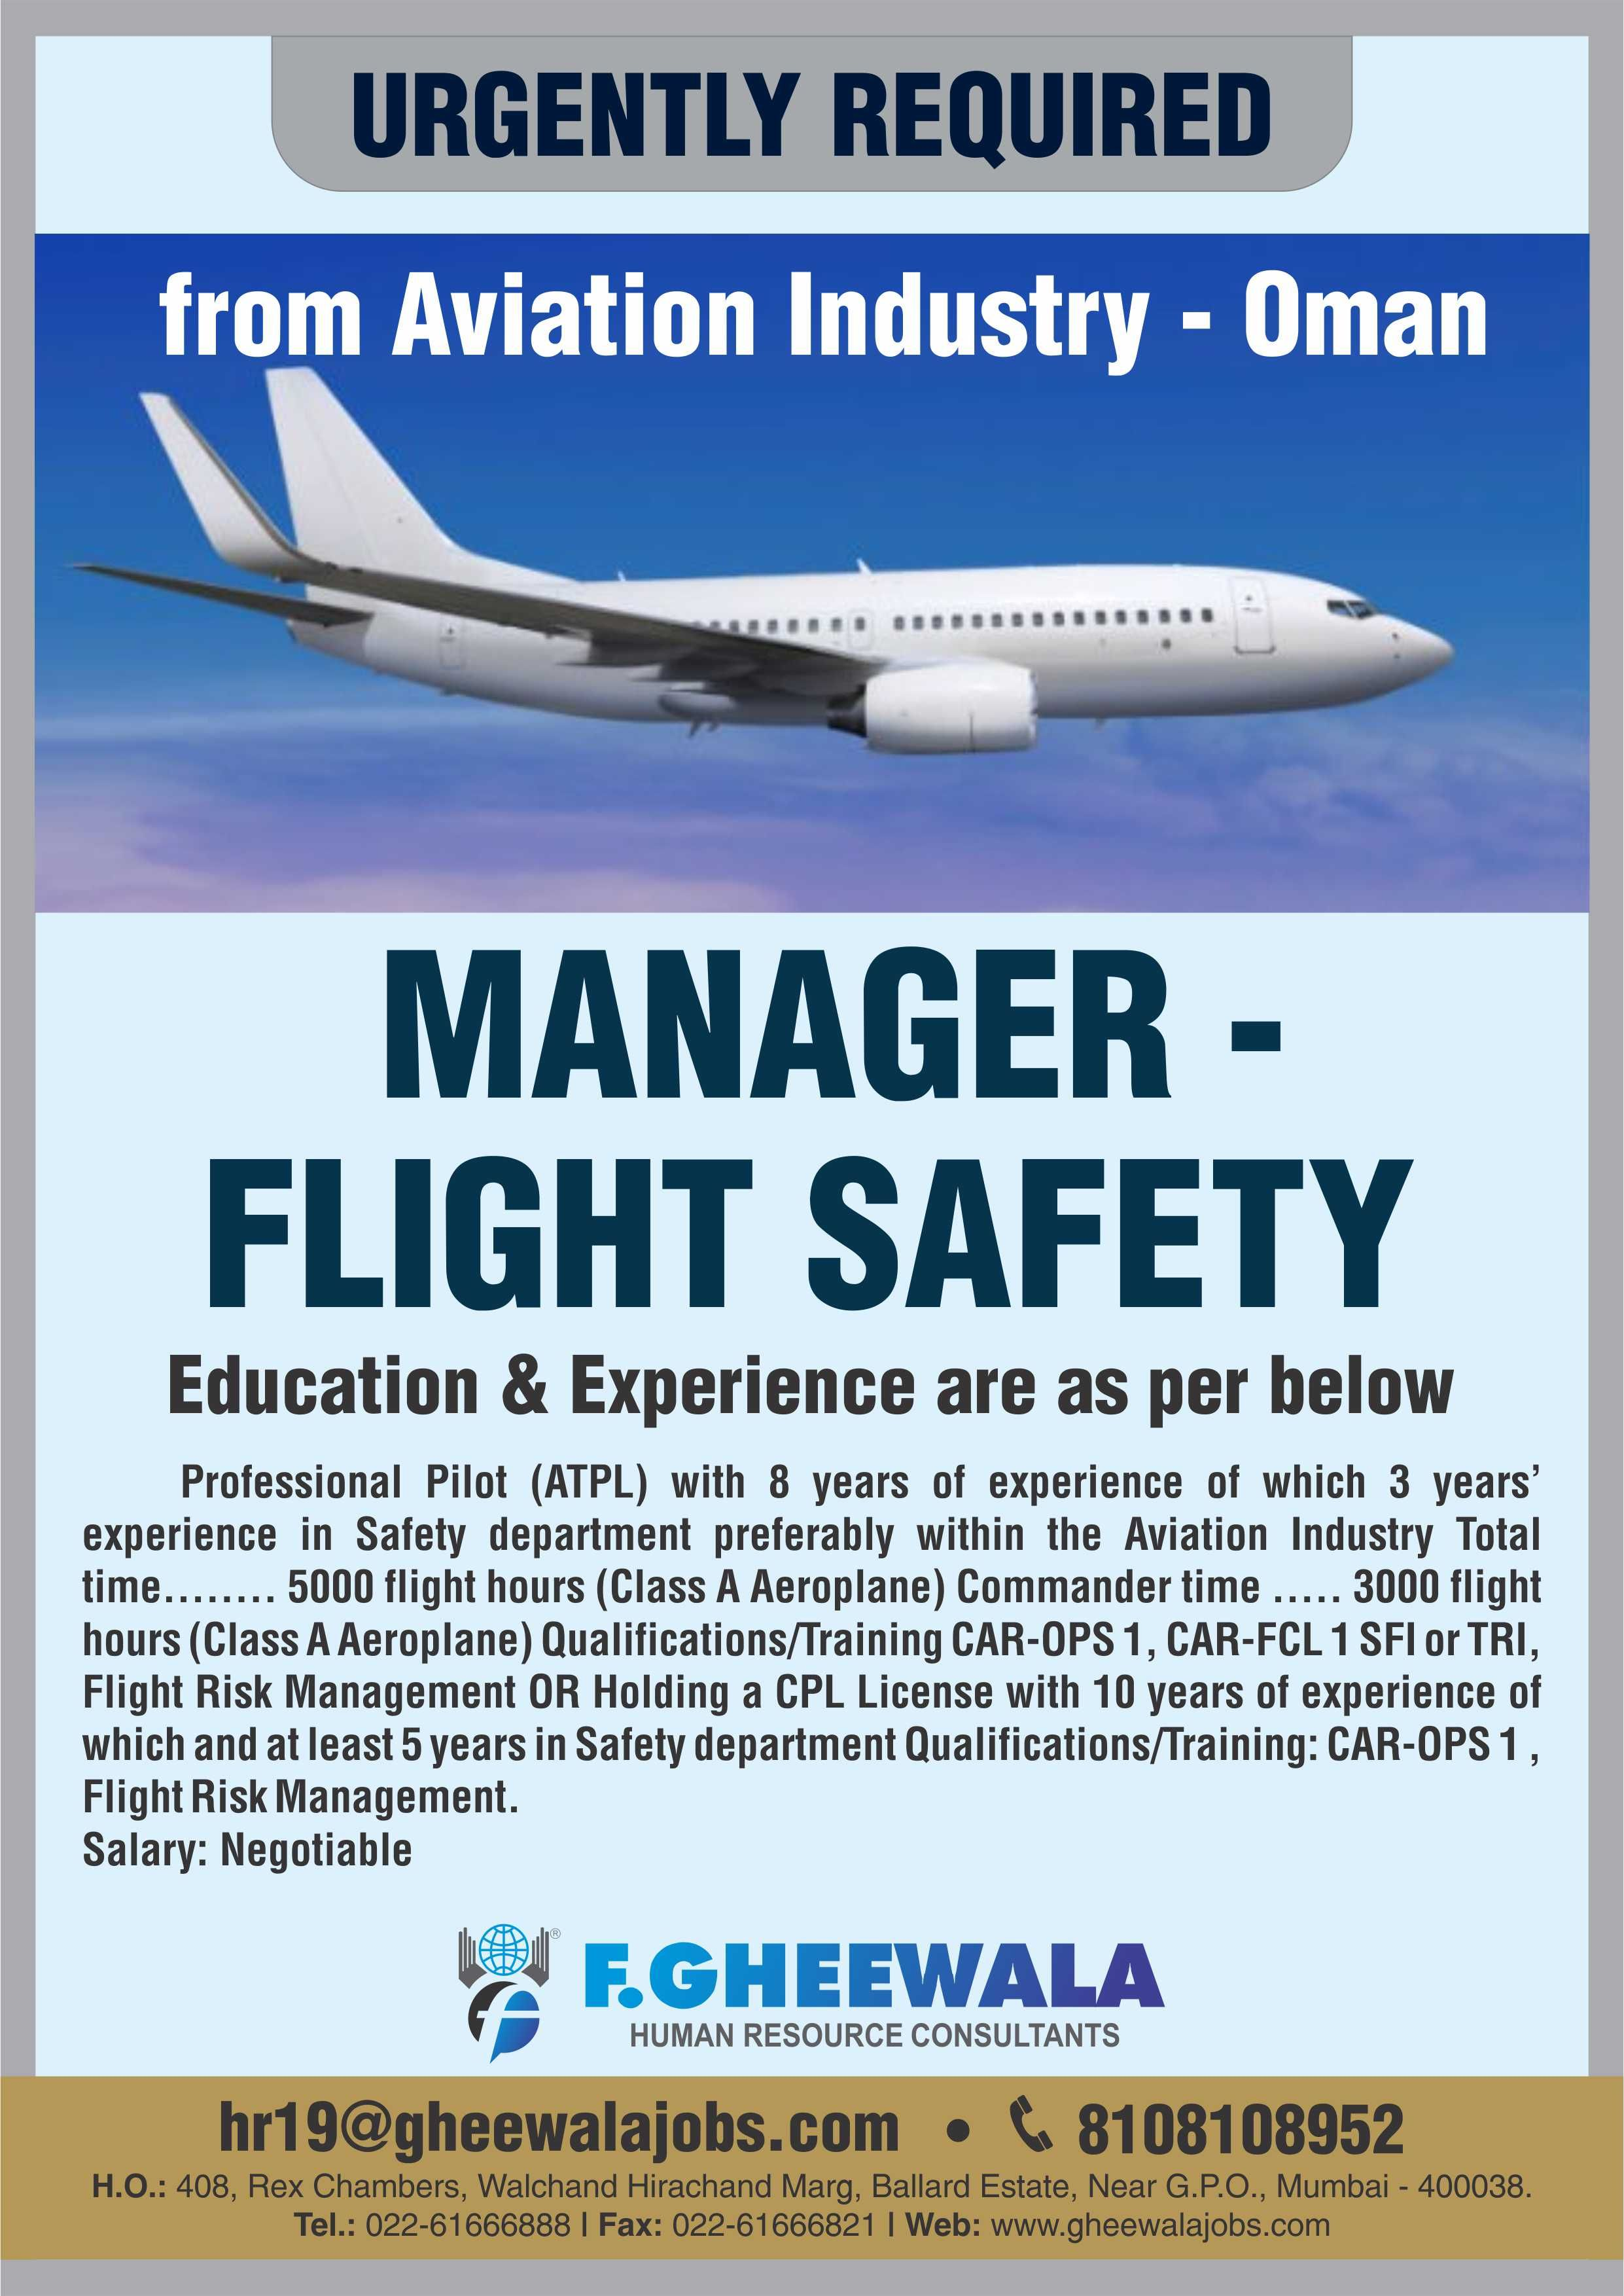 URGENTLY REQUIRED Manager Flight Safety for Aviation